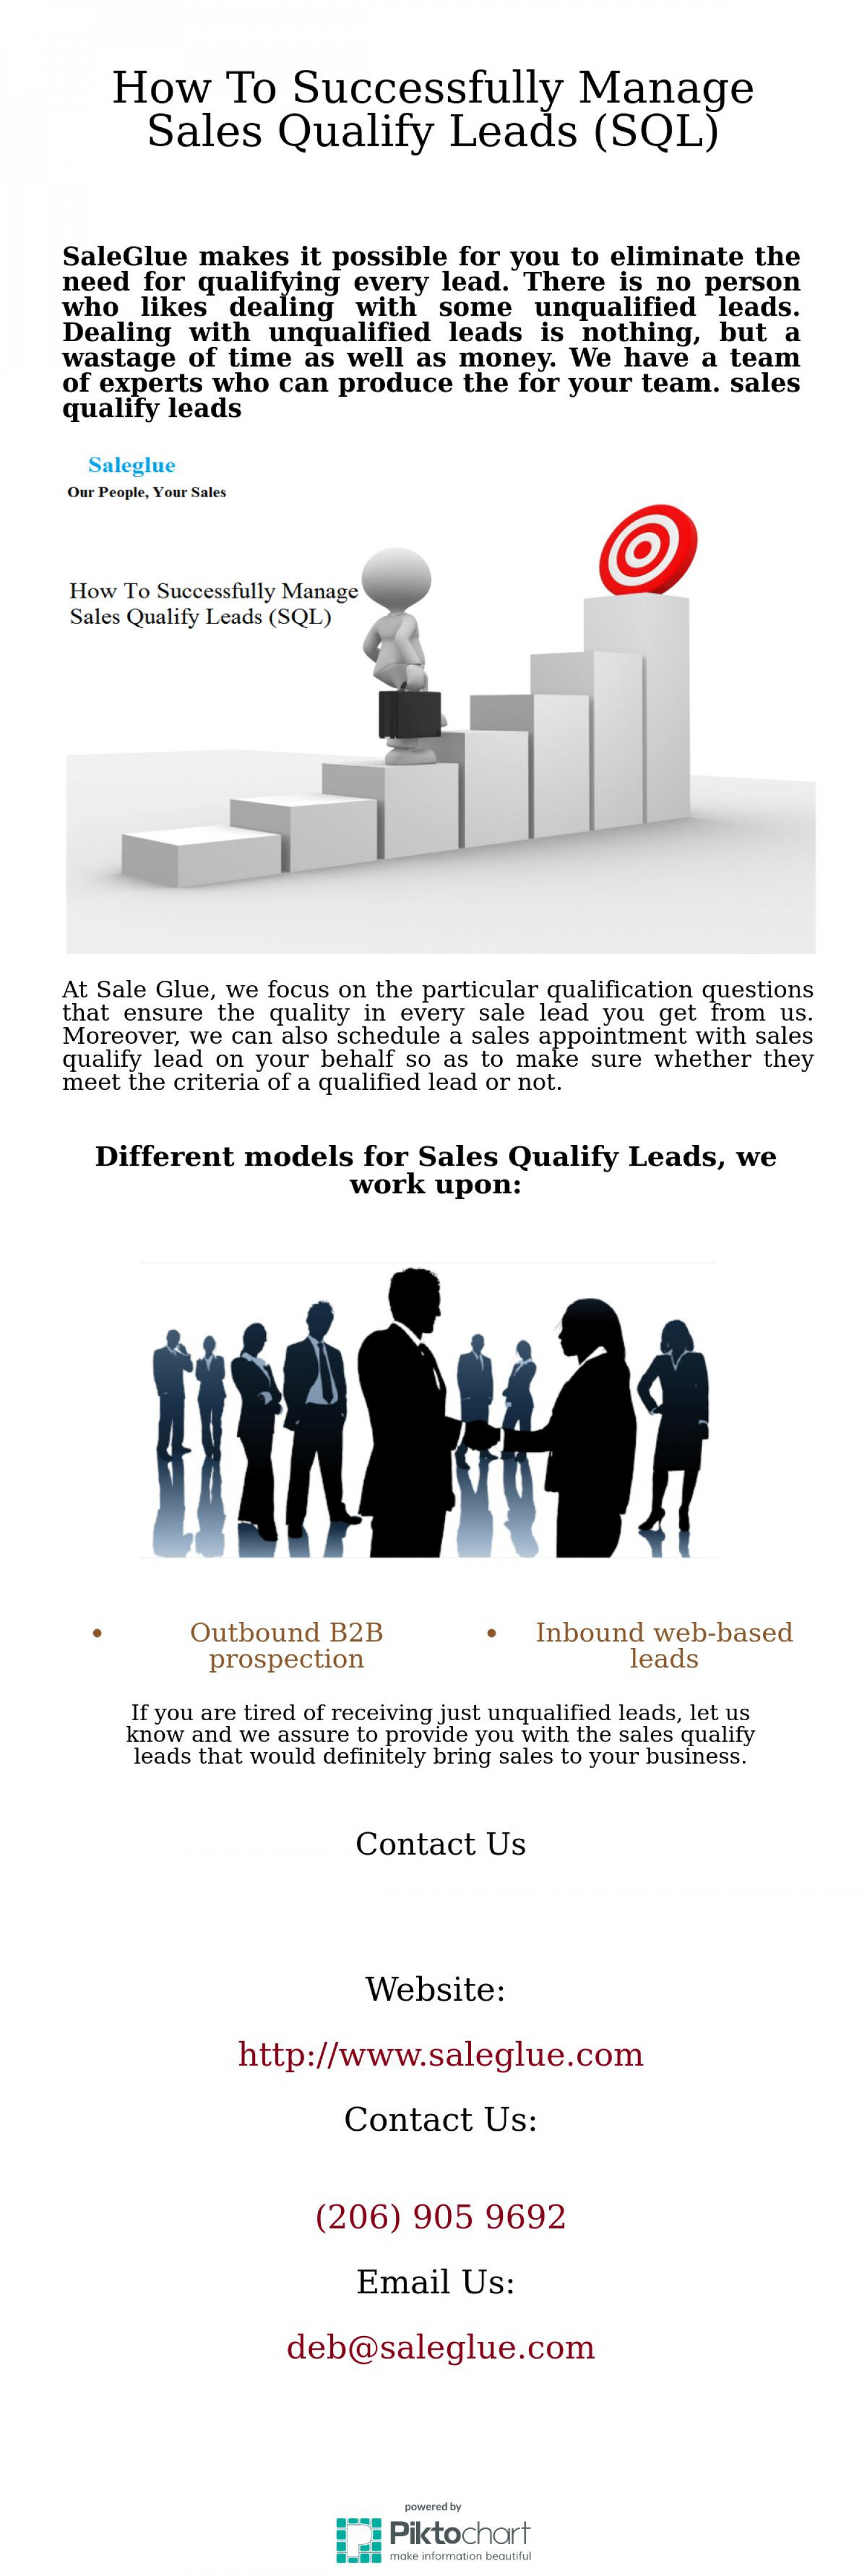 Get Sales Qualify Leads at Sale Glue Infographic